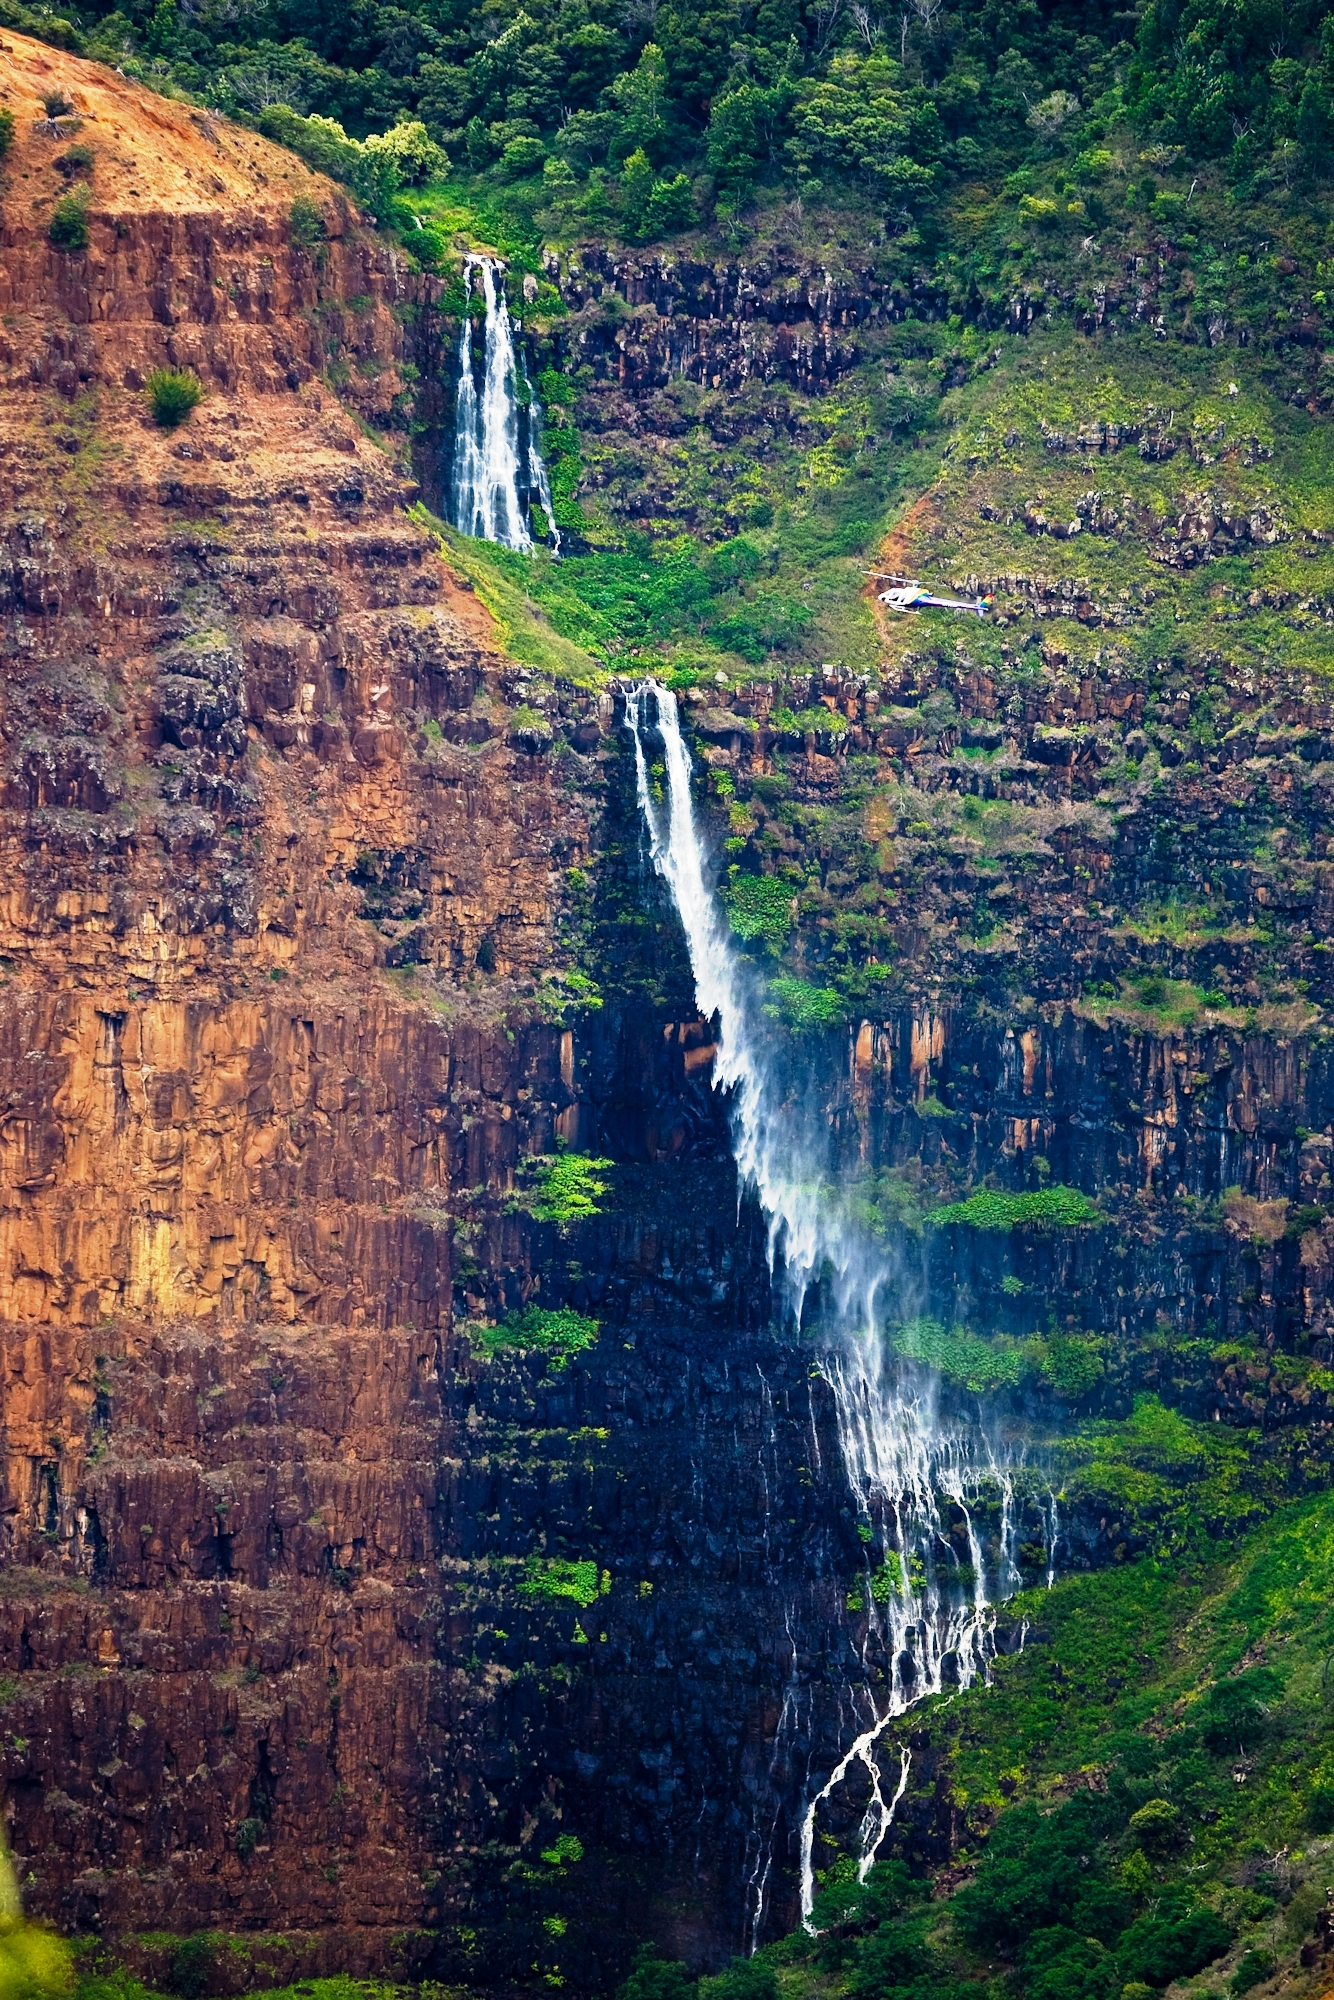 Helicopter viewing a waterfall in the Waimea Canyon, nicknamed the Grand Canyon of the Pacific